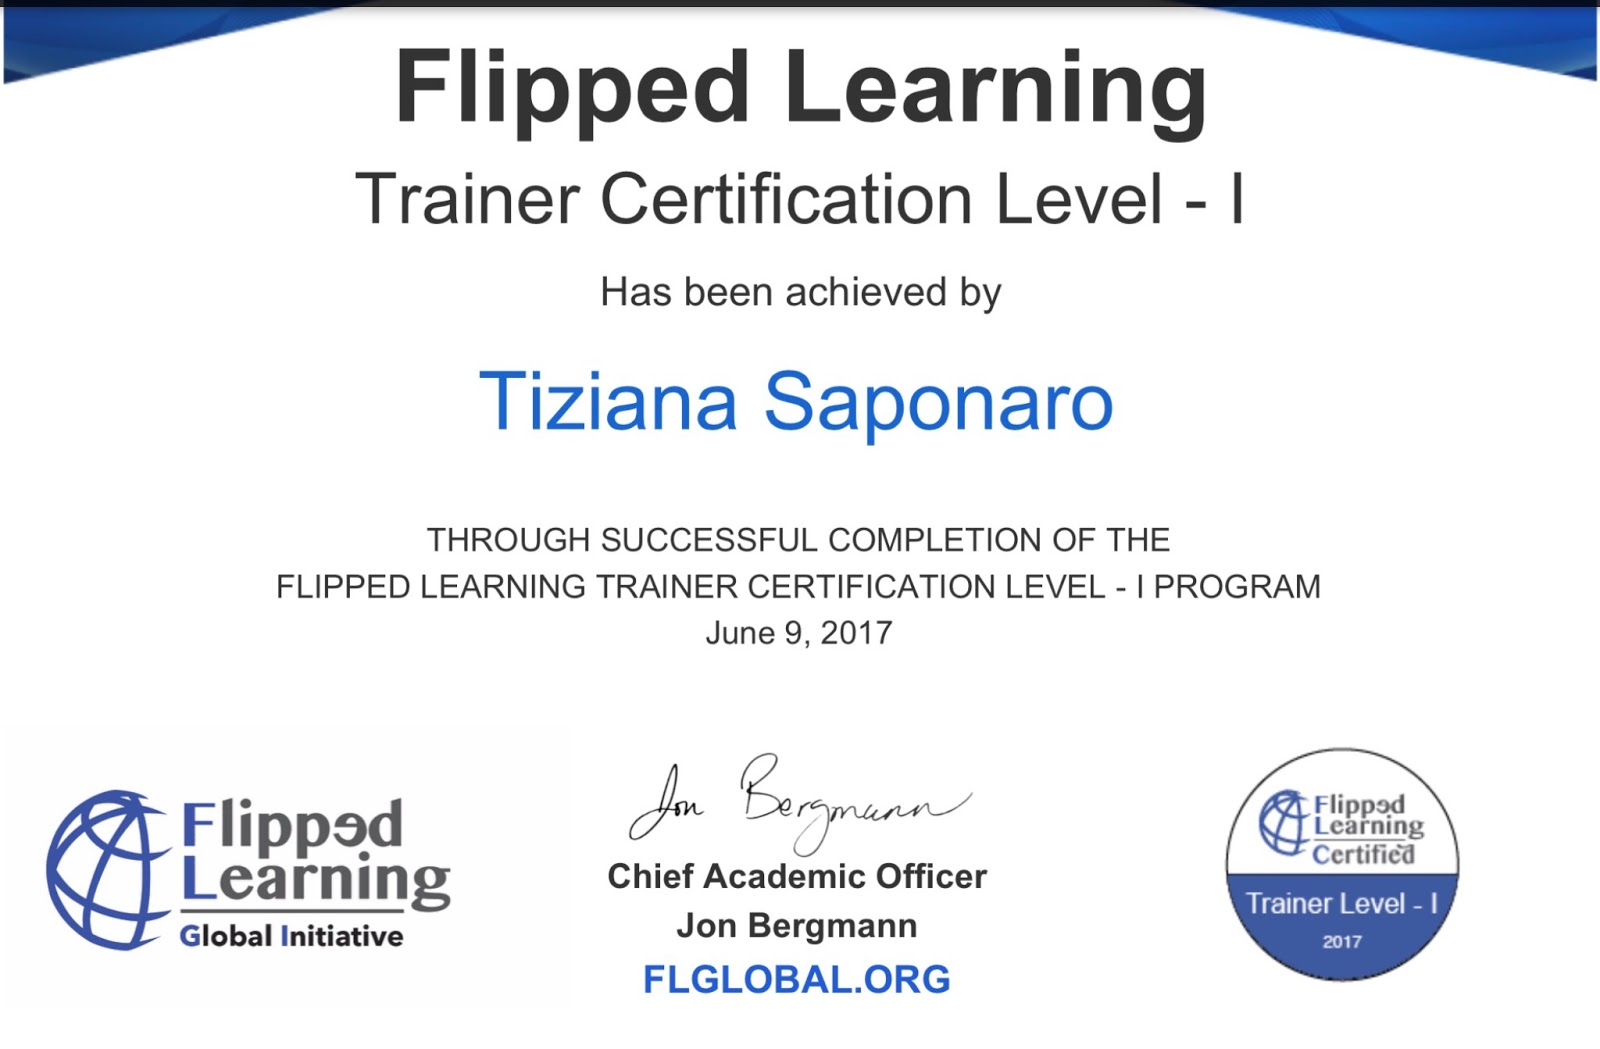 Teaching With Ipad In A Flipped Classroom Flipped Learning Trainer